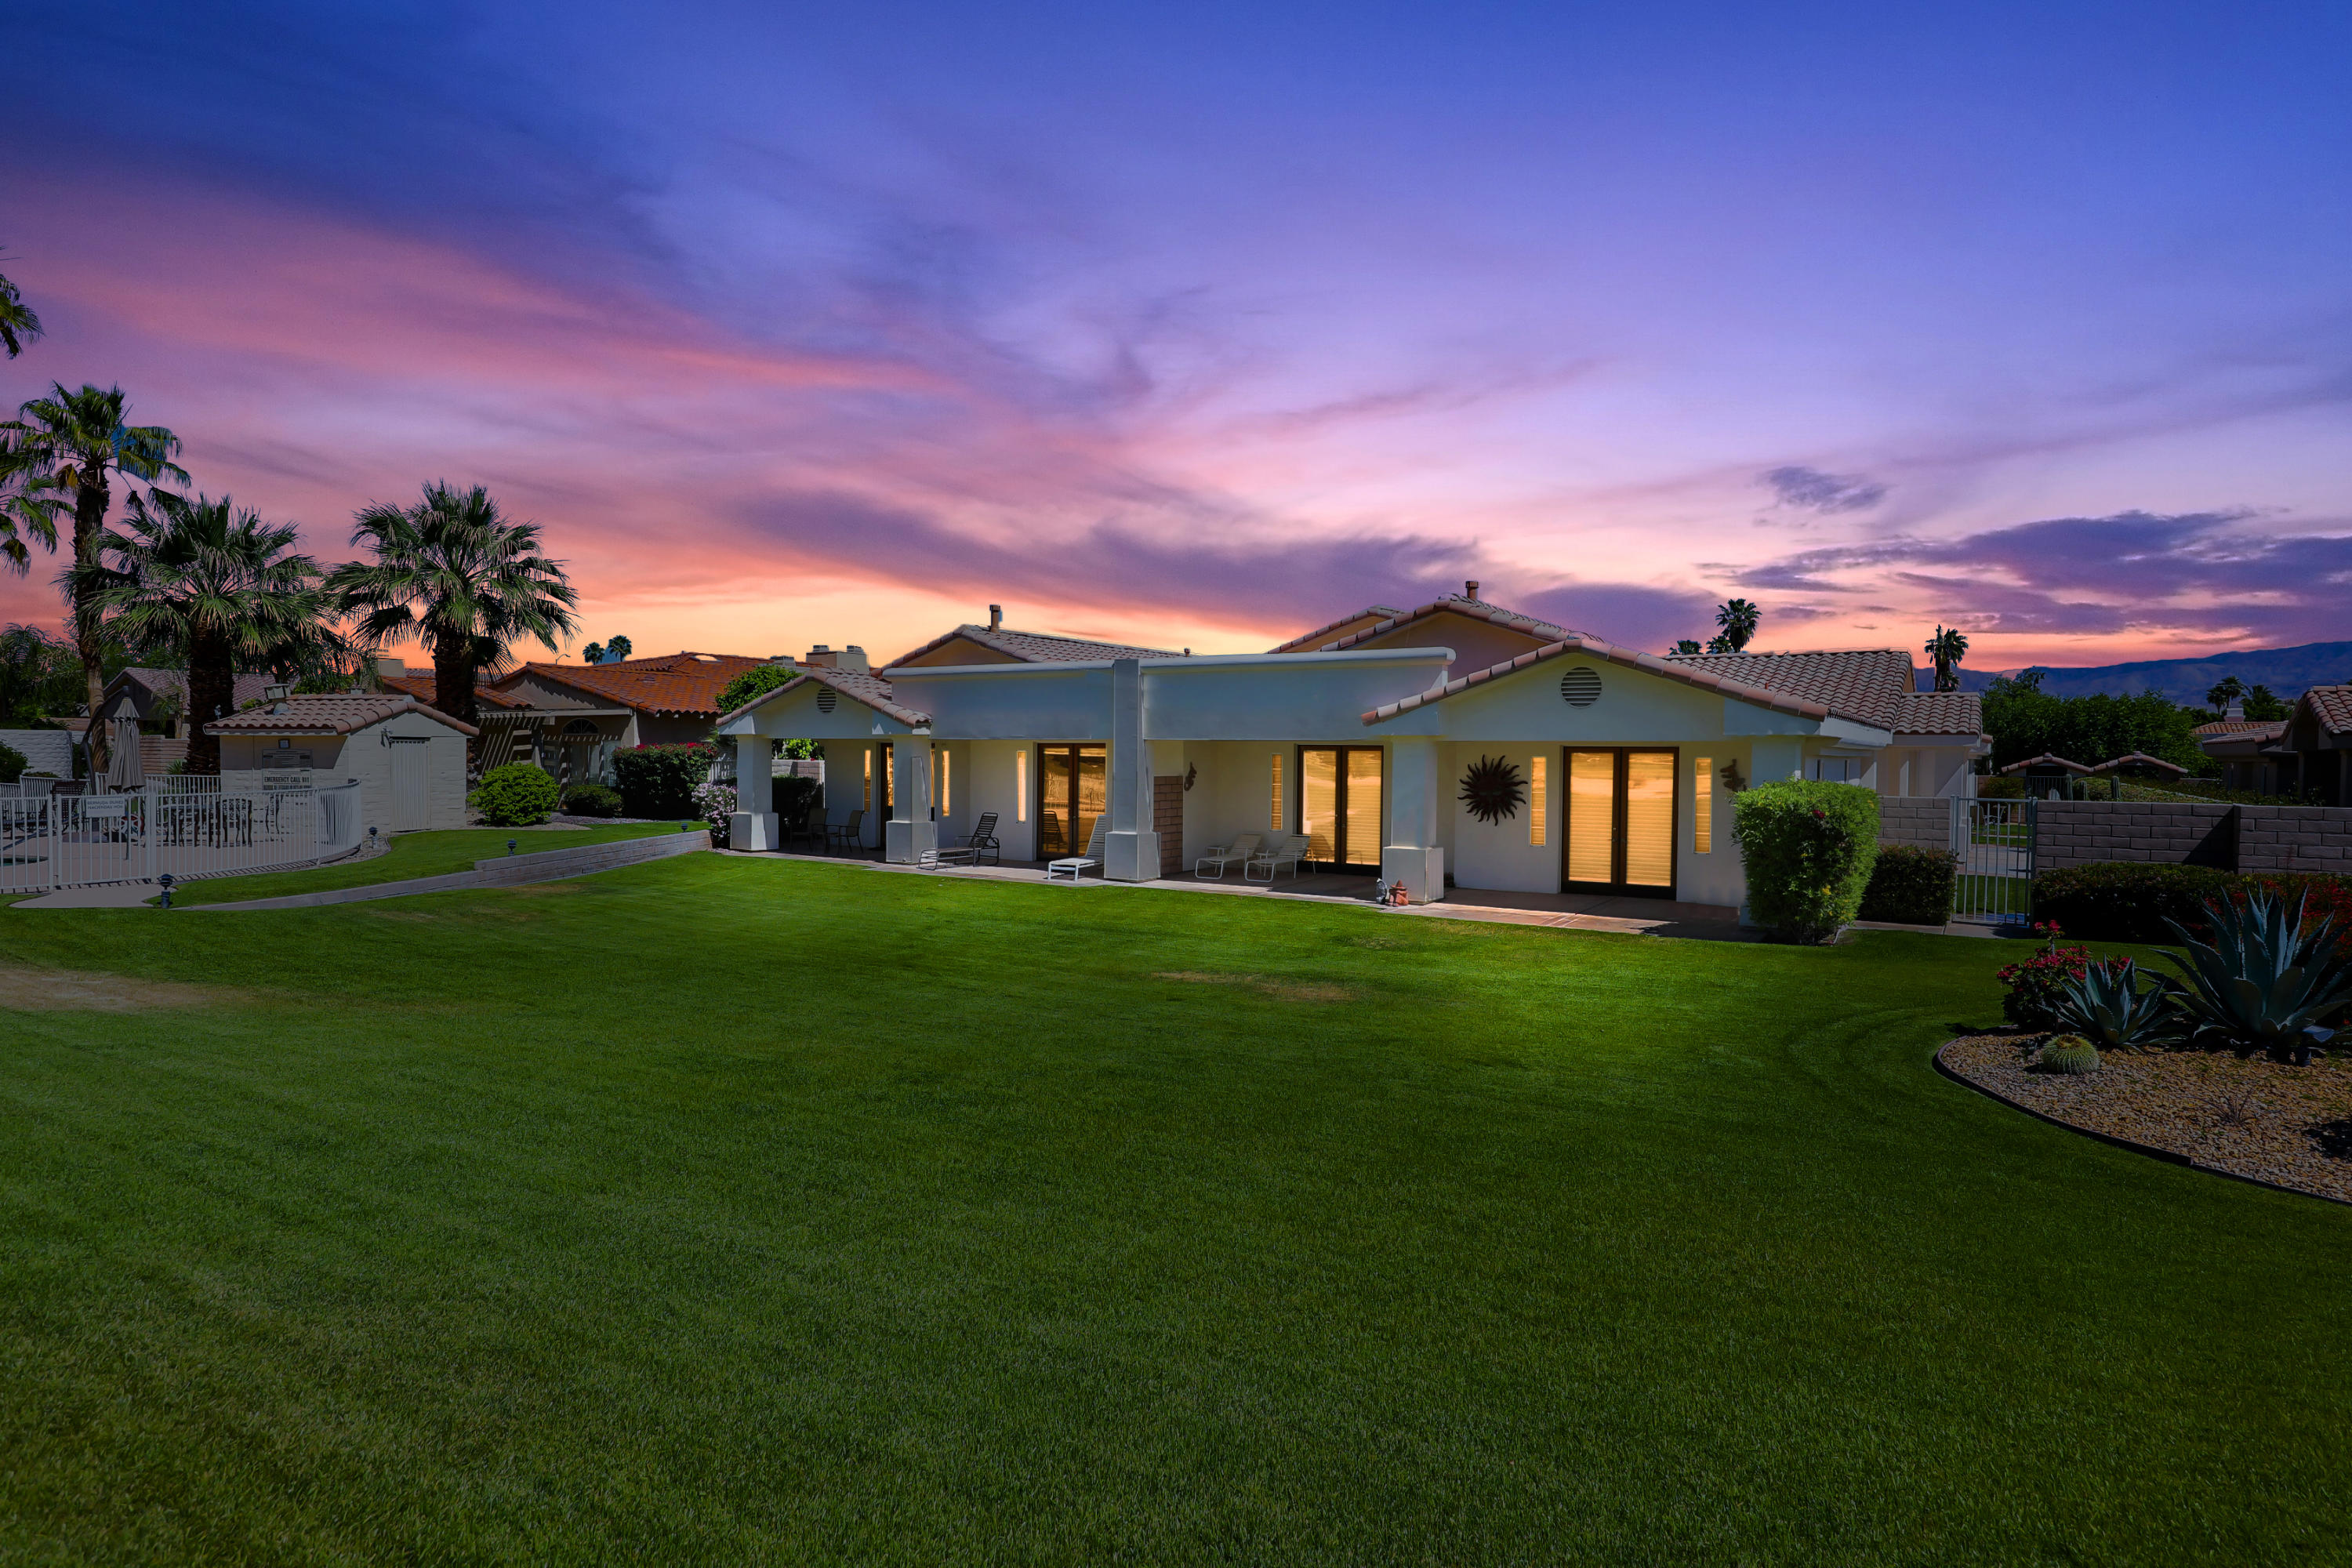 Welcome  to  La Haciendas, a 12 home development in Bermuda Dunes C.C.  This sought after paired home is one of eight attached homes built by Doug Wahl and is one of  the first steel framed homes in BDCC. Spacious floor plan with 3 bedrooms (including an attached Casita with separate entrance),  3.5  bathrooms,  PLUS an office (currently used as a fourth bedroom).  Home is on the 2nd fairway of the Classic Course and has  SOUTHERN MOUNTAIN  views from the rear patio. This unique property also has a private side yard for intimate outside dining or is great if you have a pet.  True great room plan wherein the gourmet kitchen with slab granite counters and stunning cherry cabinets is open to the dining room and family room.   The spacious formal living room with fireplace and door to rear patio is great for entertaining or watching your favorite video on the large screen TV.   The primary suite also has a door to rear patio to take in the Southern views and a fireplace for those cooler evenings  plus a sumptuous bath with marble shower, granite counters and spa tub with marble surround.   Guest suite with 3/4 bath, and office with French doors (currently used as  a bedroom).  Attached CASITA with separate entrance, frig, 3/4 bath and sitting area.  Two-car attached garage plus separate golf cart garage.   HOA of $199 includes cable TV w/two boxes with Showtime & HBO, plus internet with Spectrum.   HOA of $525 incl. pool & ground maintenance.  Connected to SEWER!